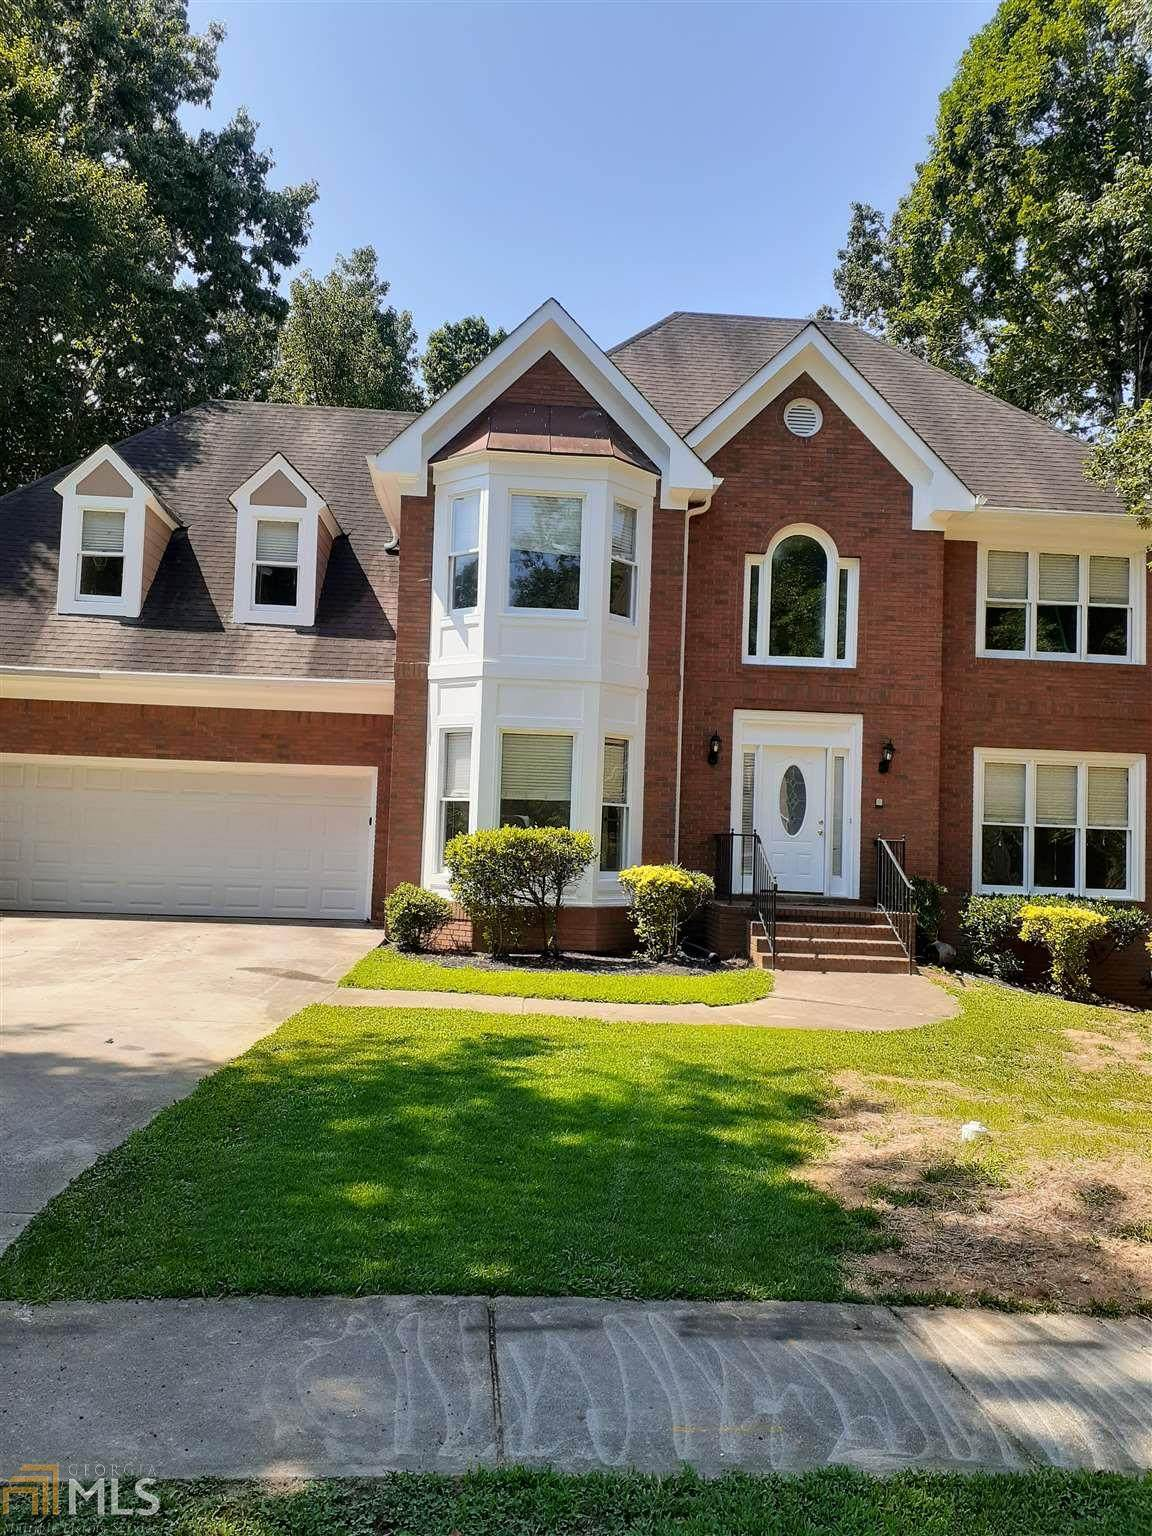 7435 Waters Edge Dr - Photo 1